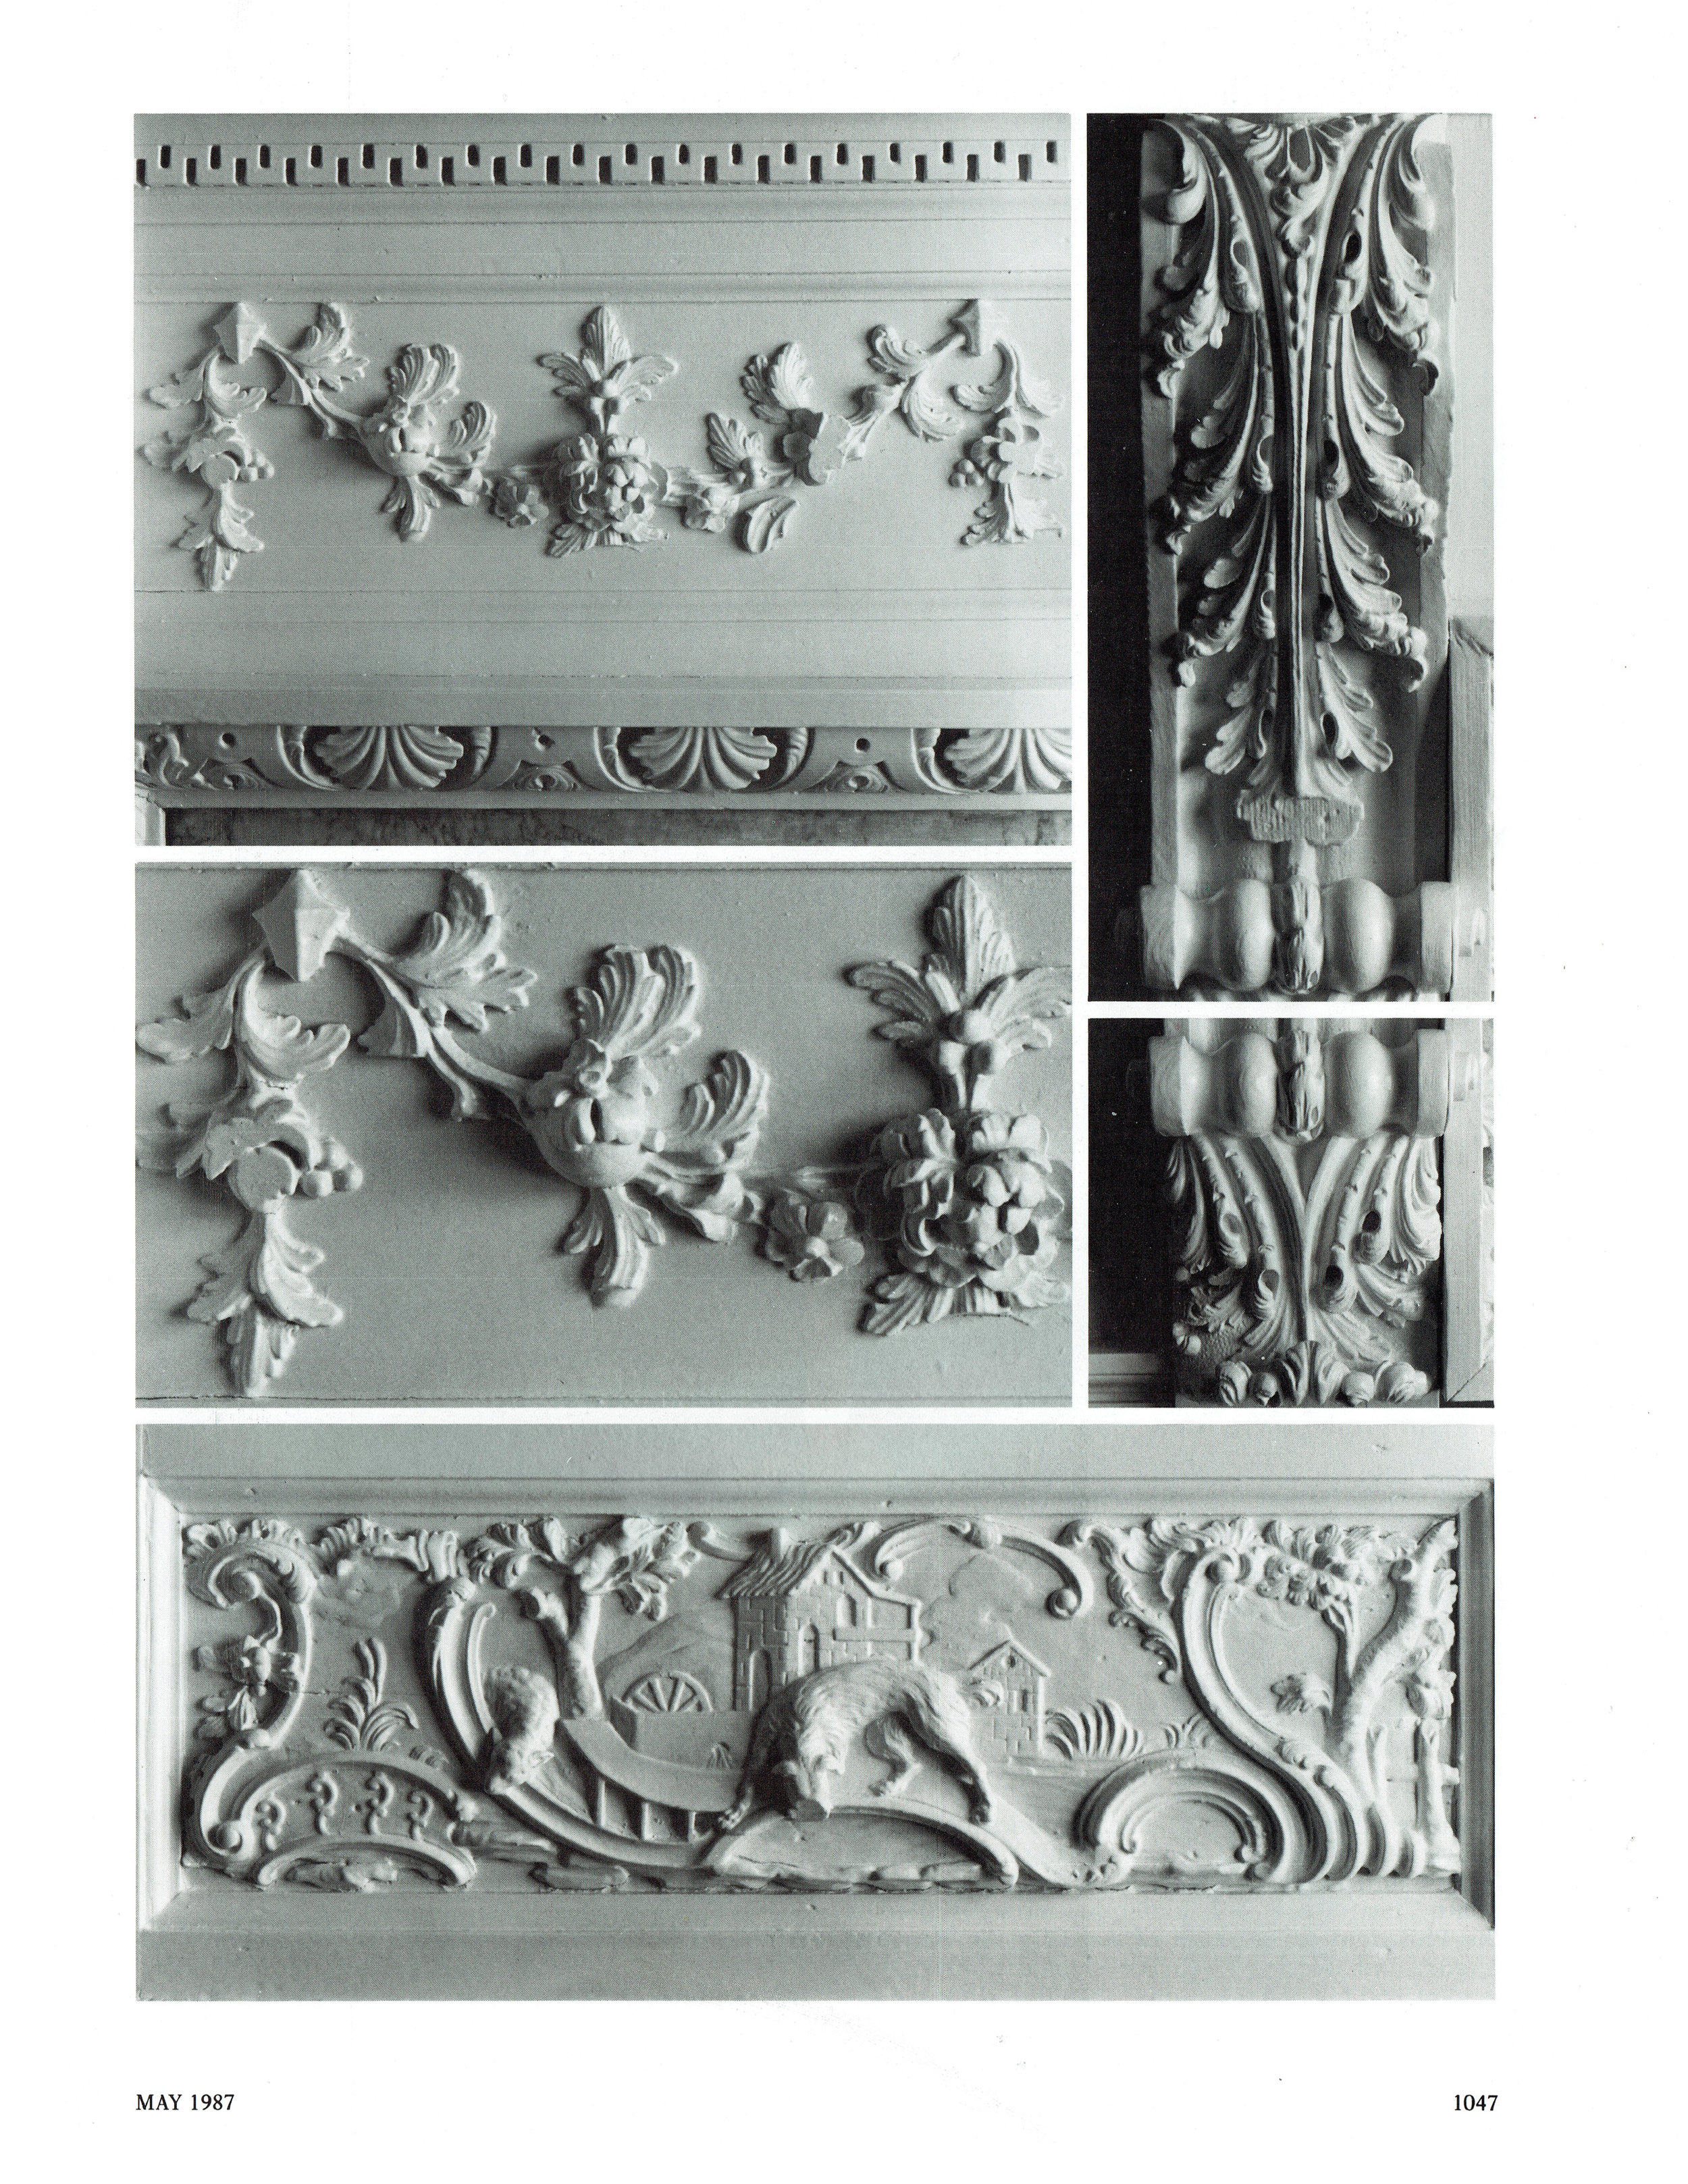 2018.01.16 CPF Antiques Article 05 - Pg1047.jpg